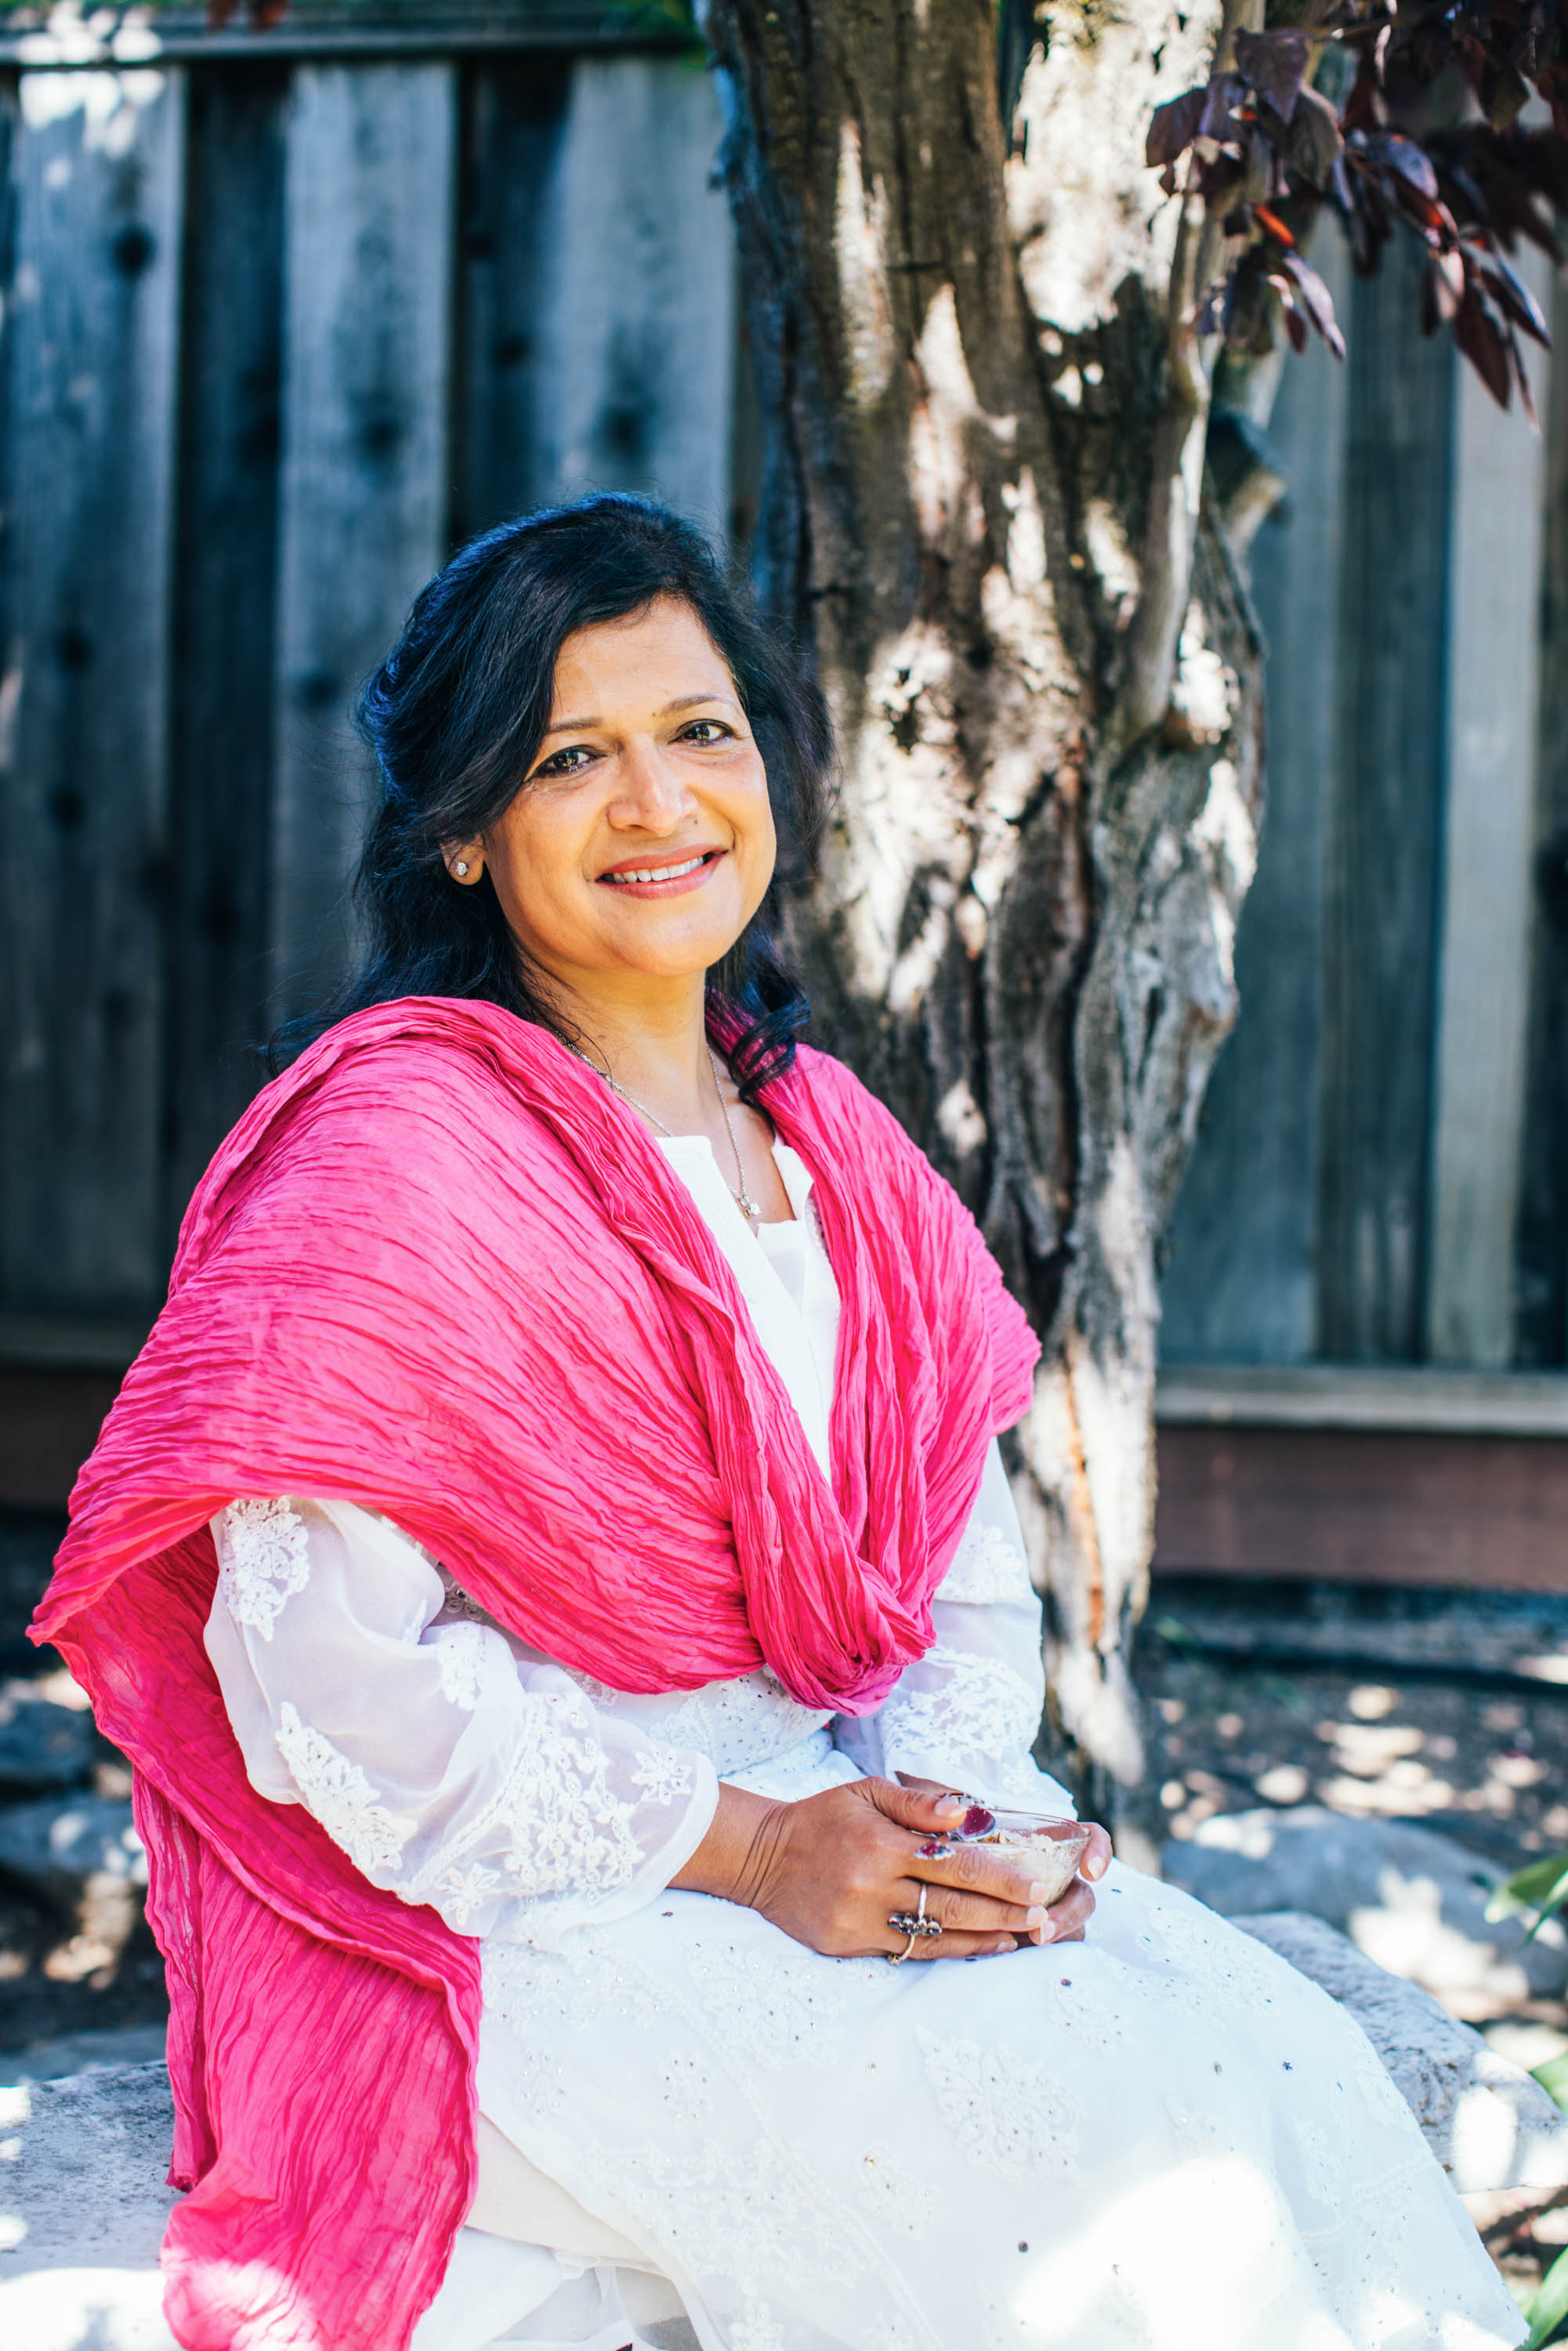 Sarika Agrawal - Hi my name is Sarika and I am a mother to two wonderful children and a creative at heart! I have shared my creativity through different mediums whether it be interior design, painting, or food. I am so thrilled to bring this cookbook to you filled with old and new recipes.